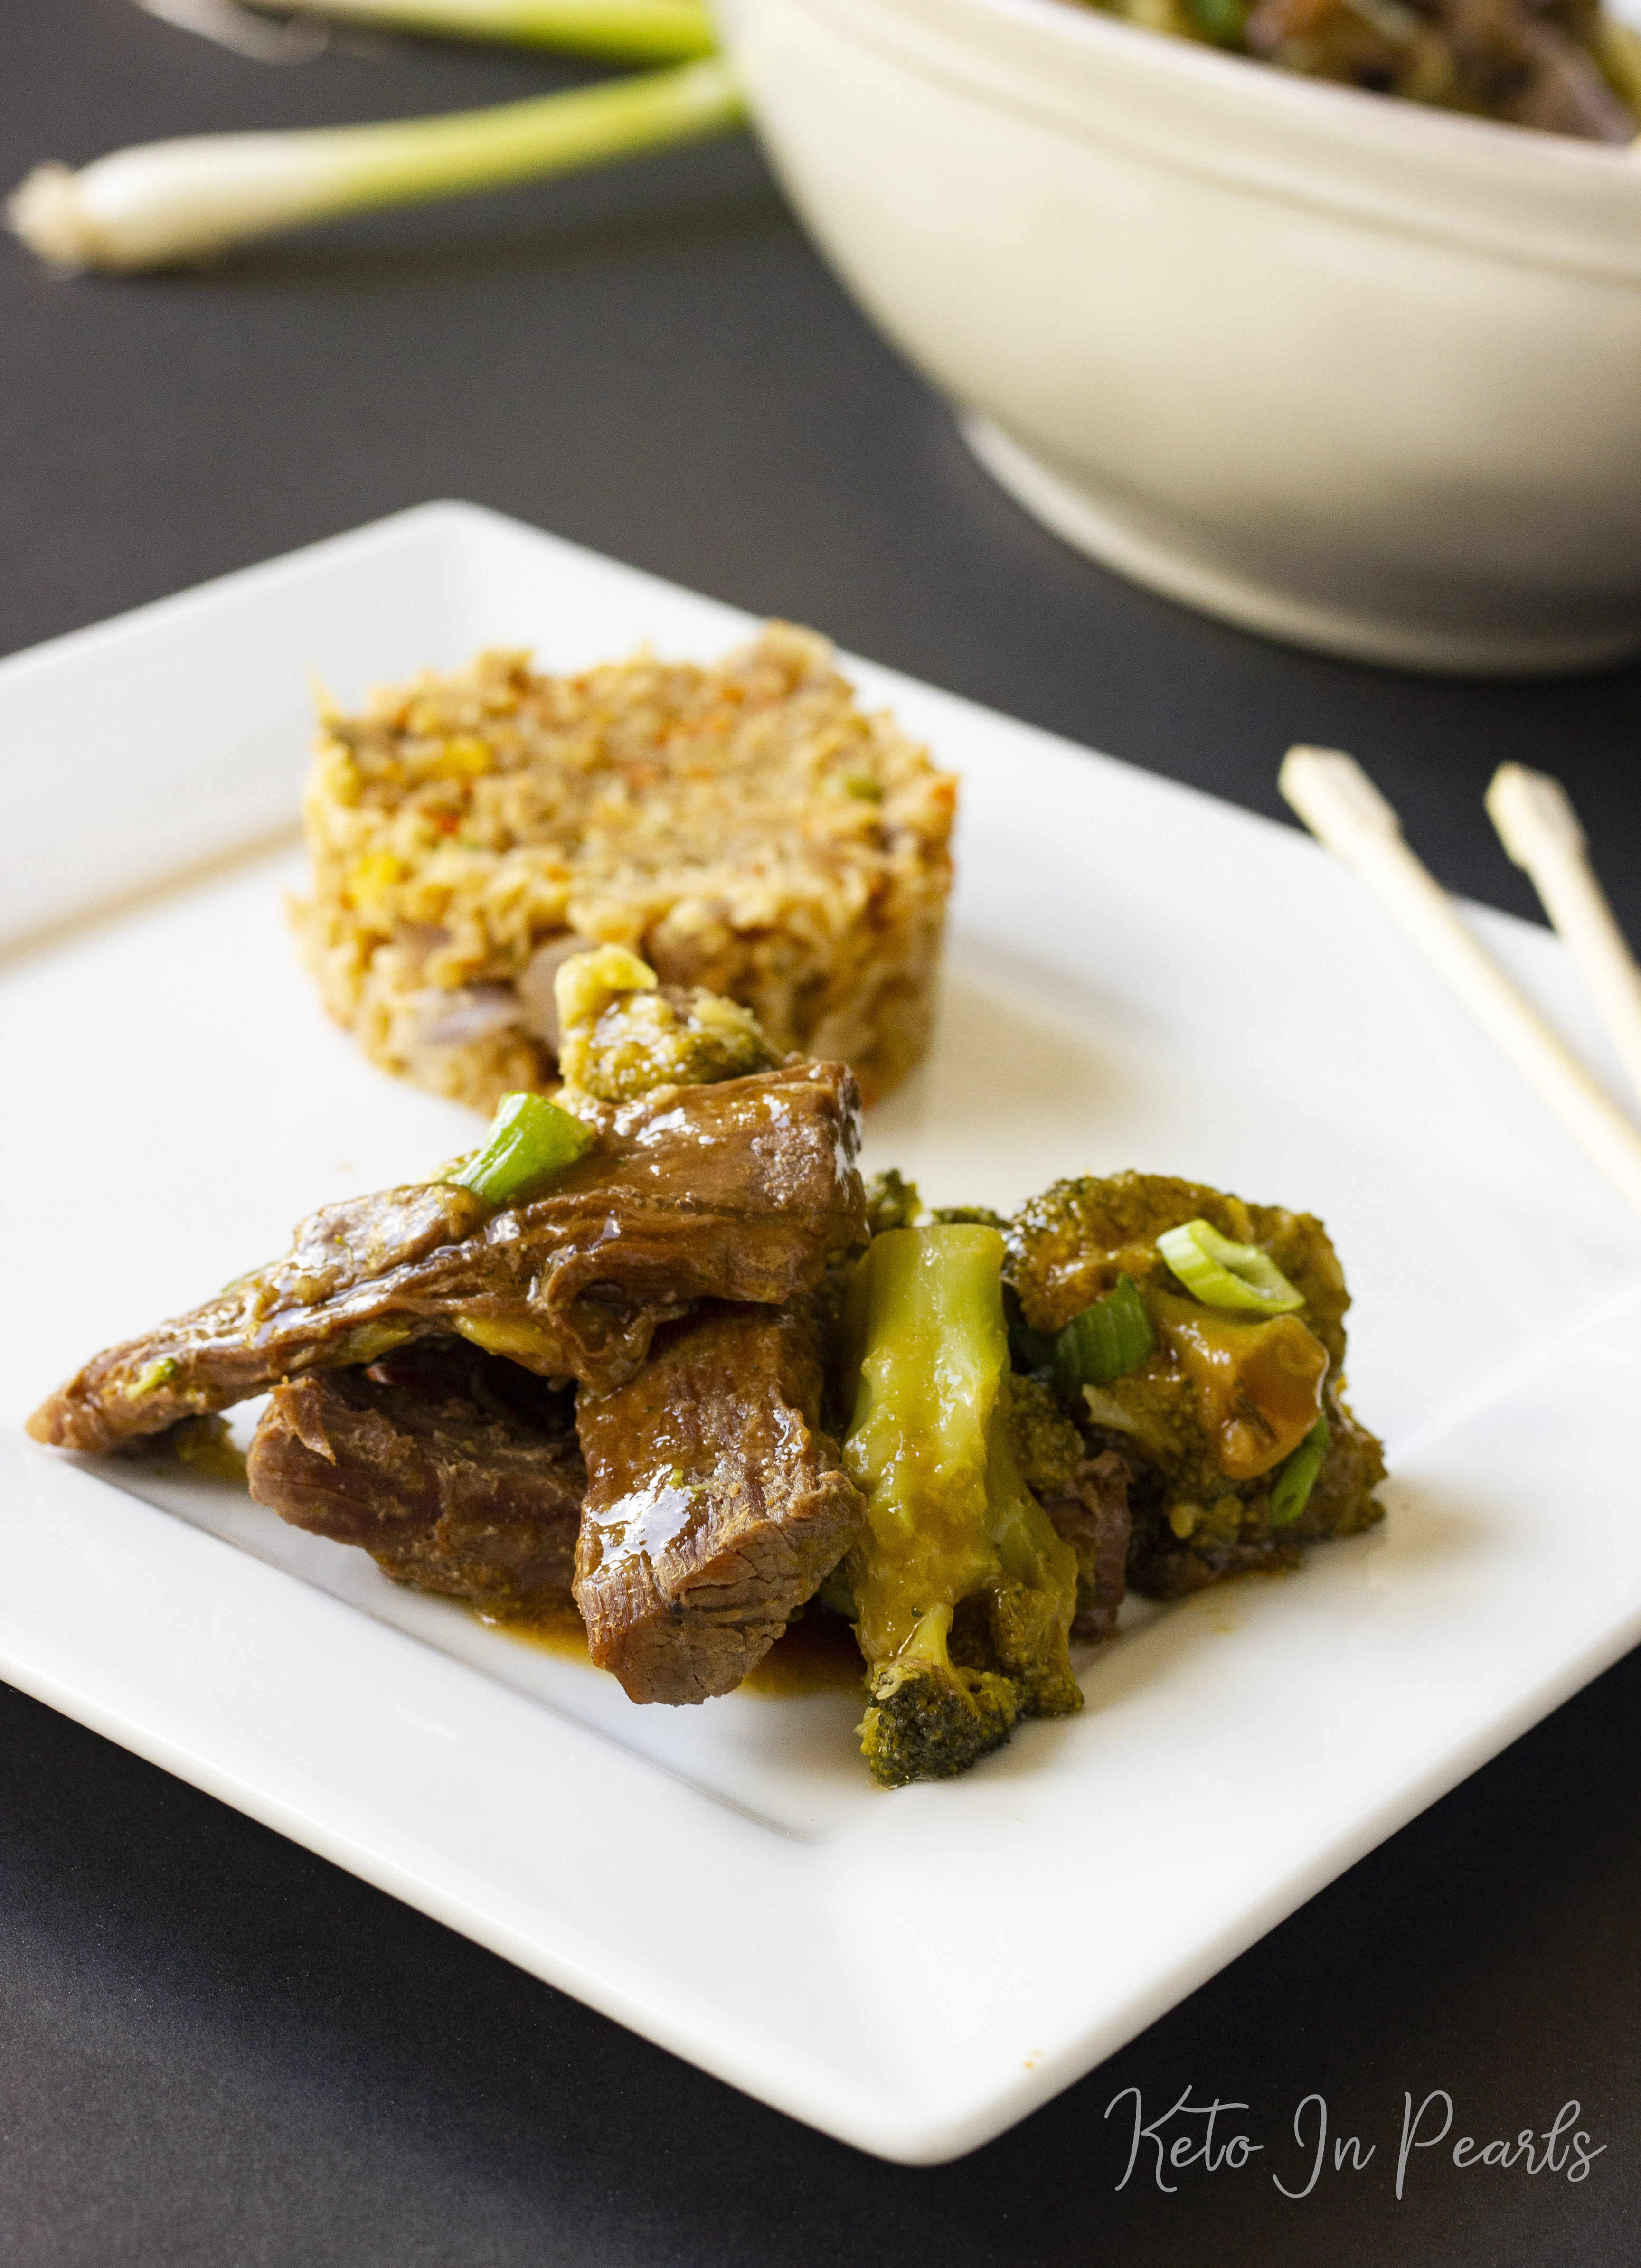 Satisfy your keto Chinese take-out cravings with this recipe for Instant Pot keto beef and broccoli. Crock-pot and Instant Pot instructions included.